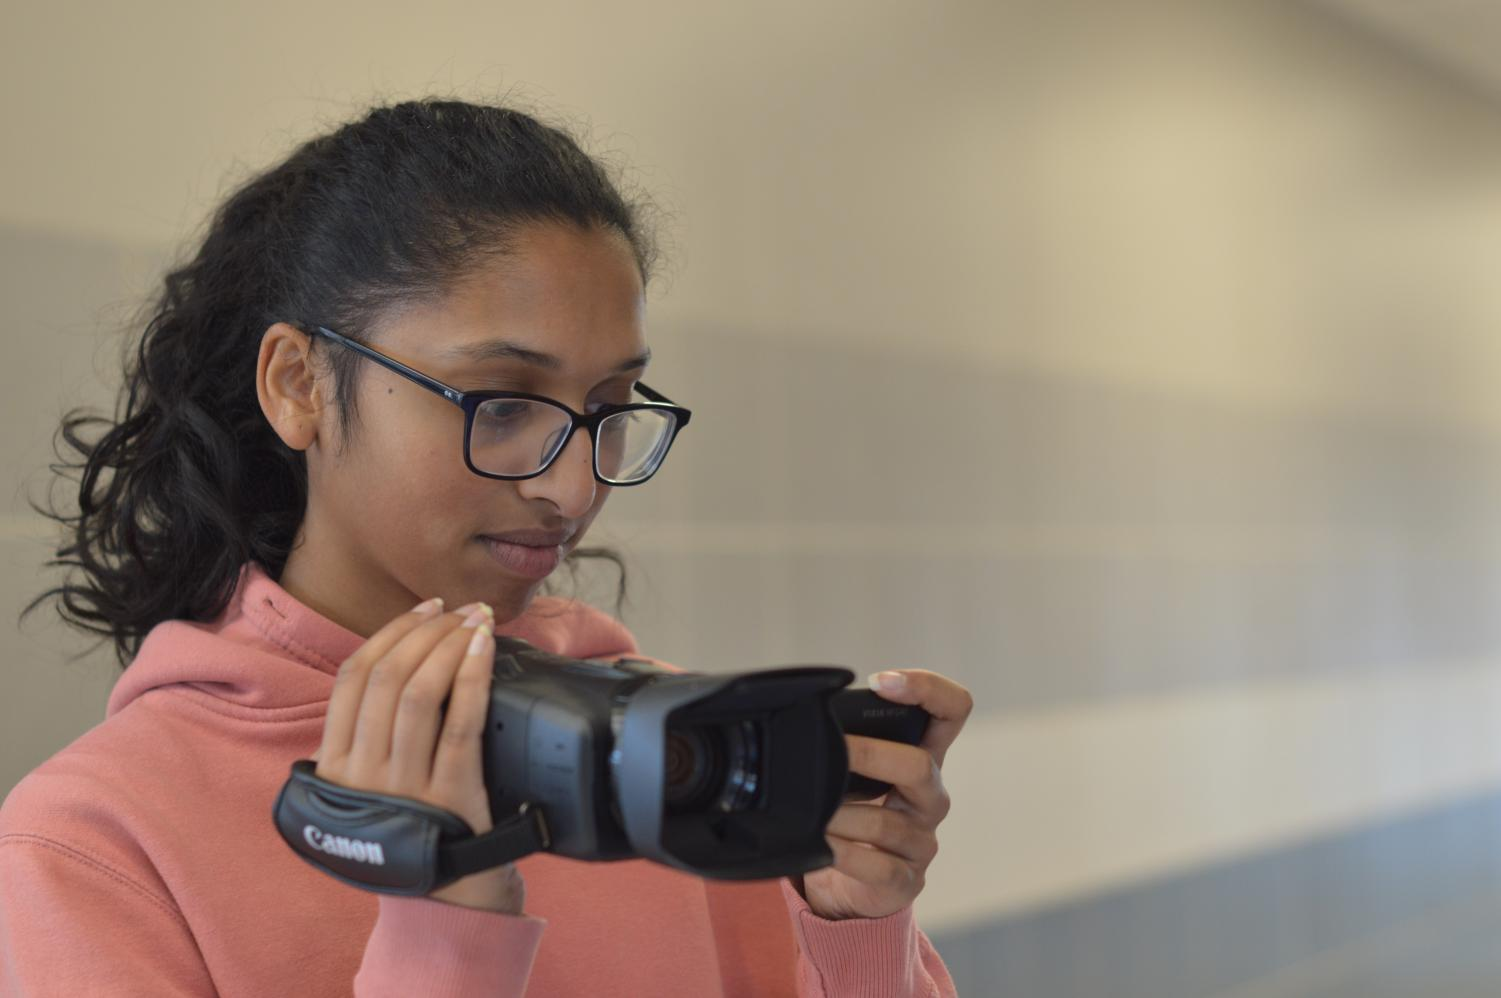 """Filming the halls, Elizabeth Thomas puts her skills to the test. """"I am trying to familiarize myself with programs used in the industry and I just keep working on my skills and trying to come up with ideas for videos and possible short films,"""" senior Elizabeth Thomas said."""